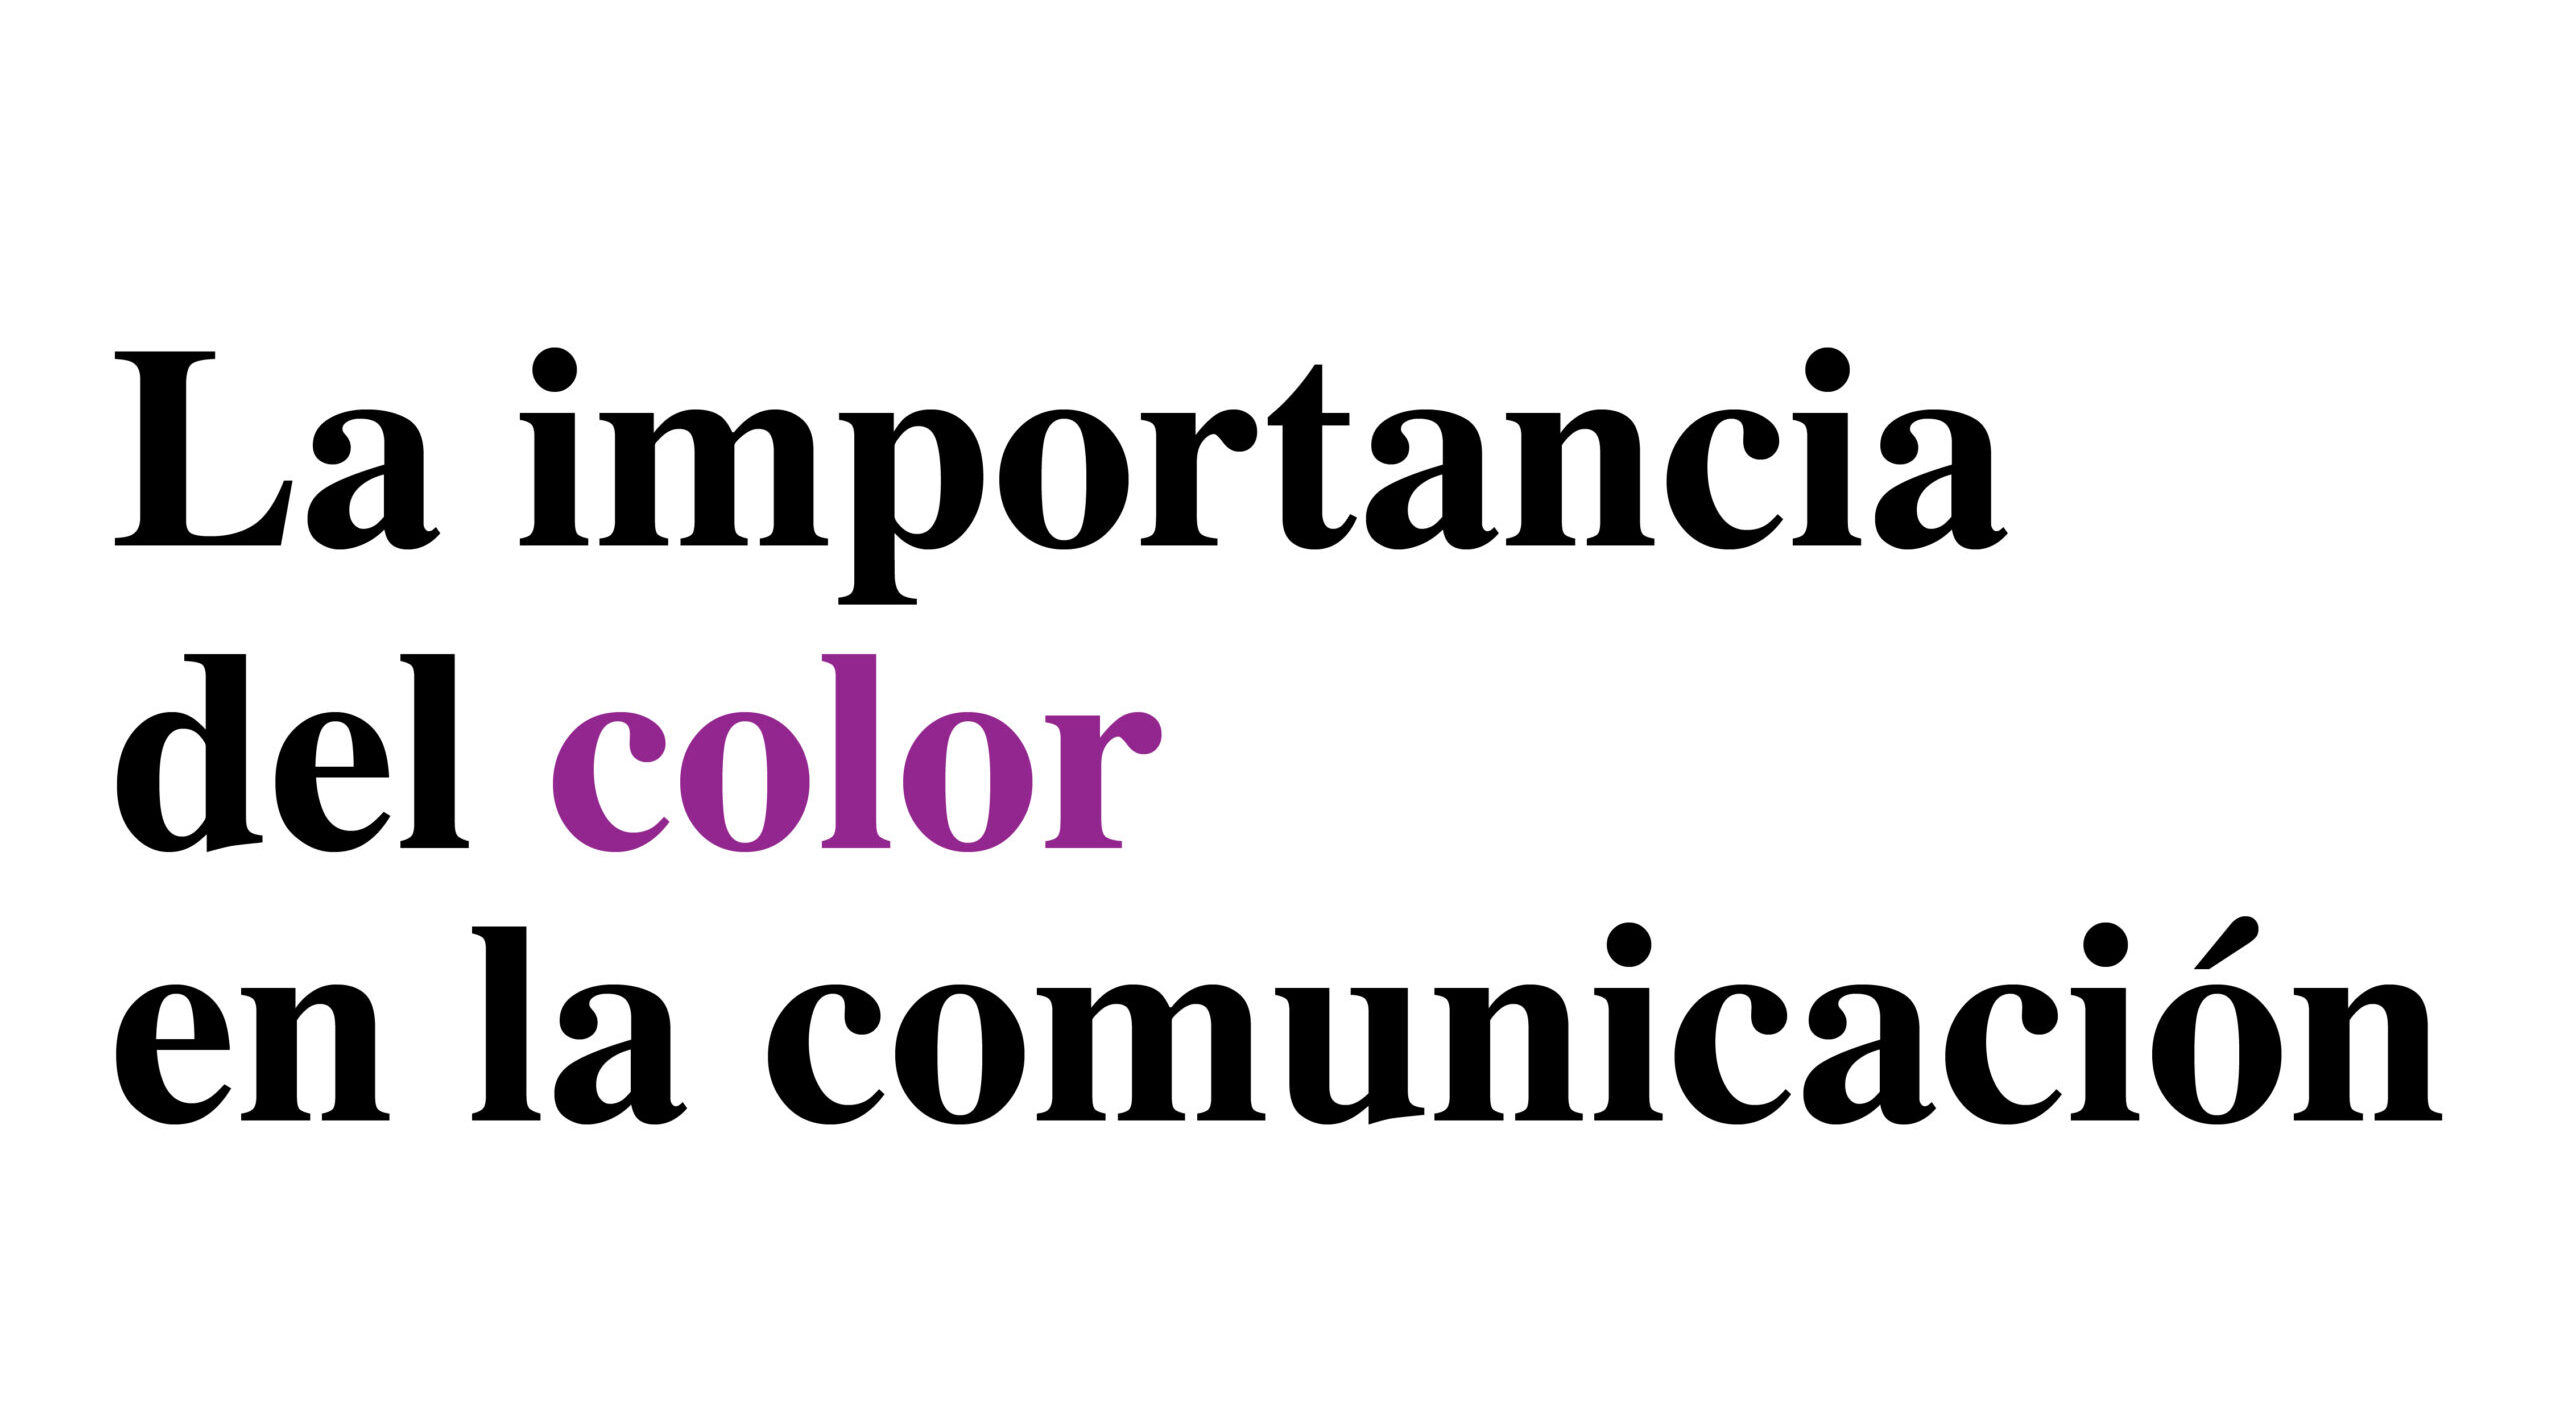 Importancia del color en comunicación